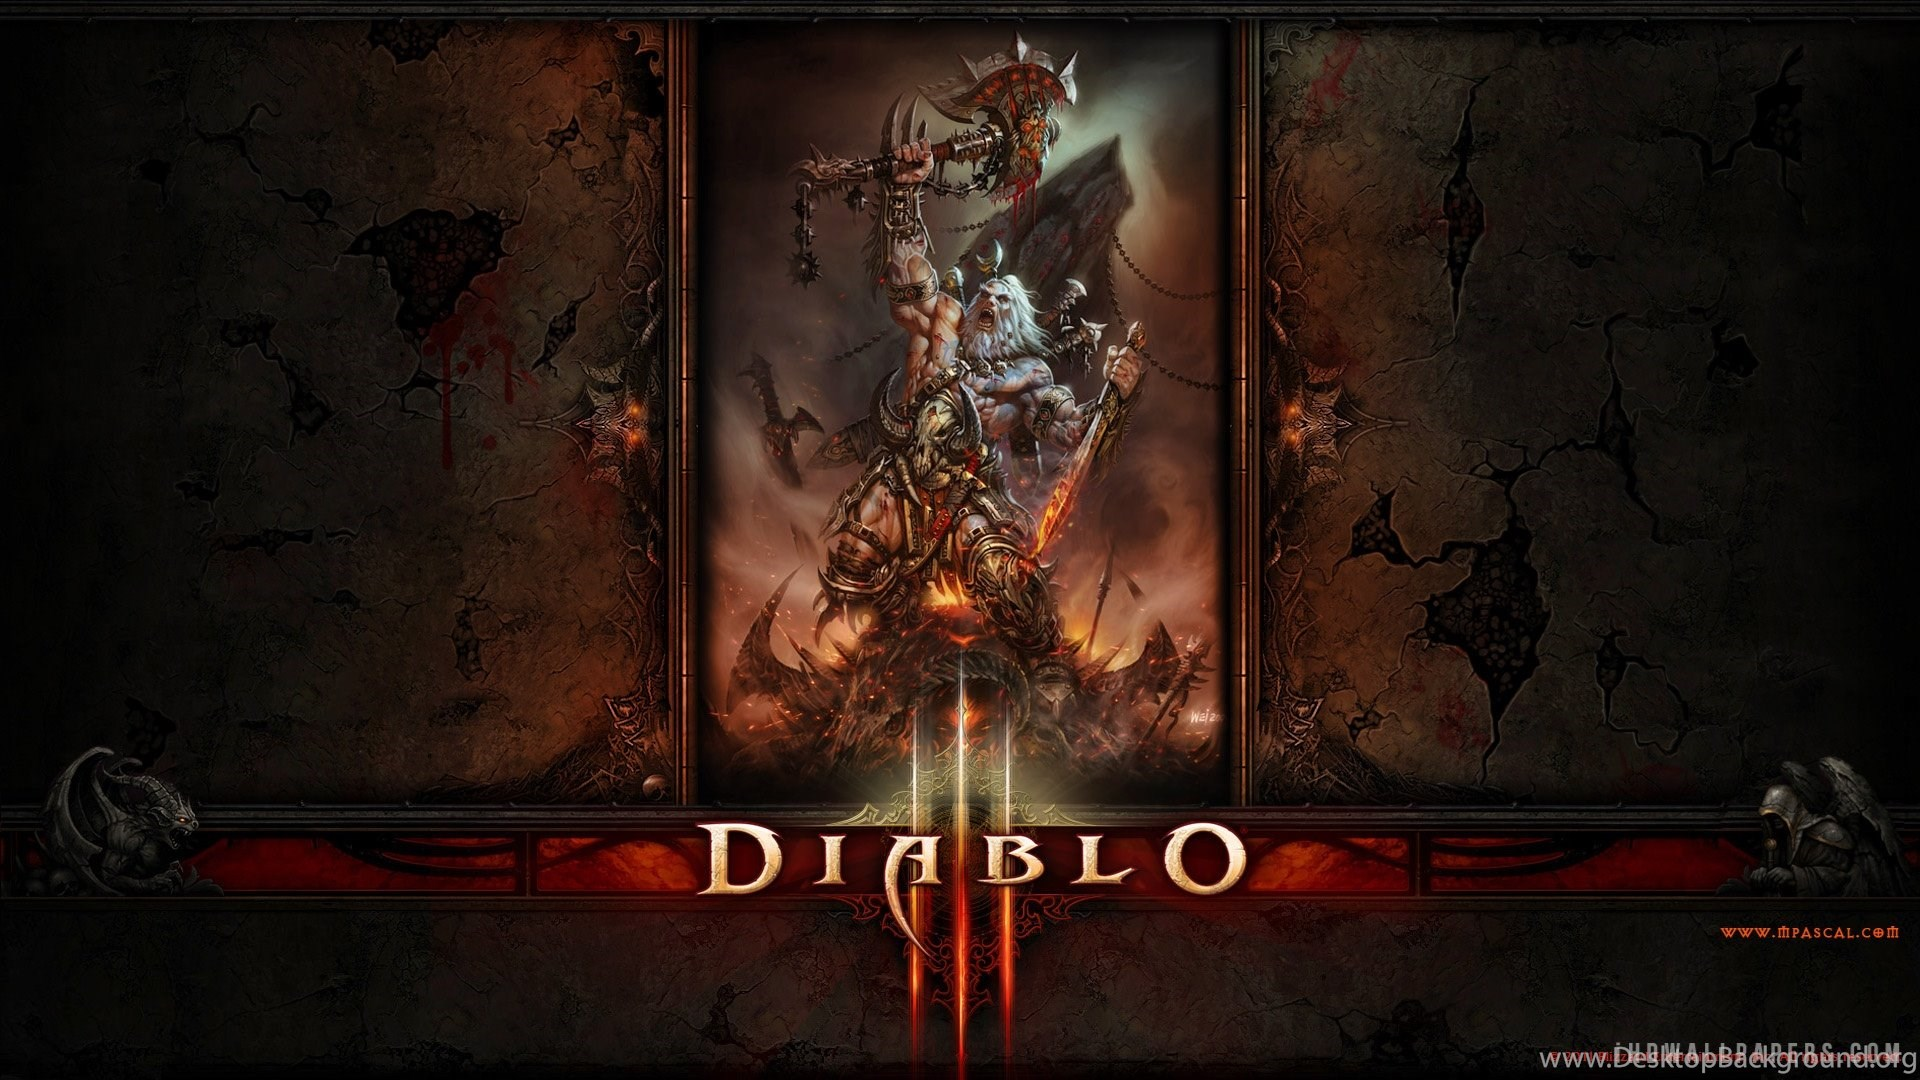 Diablo 3 Demon Hunter Hd Wallpapers Ihd Wallpapers Desktop Background